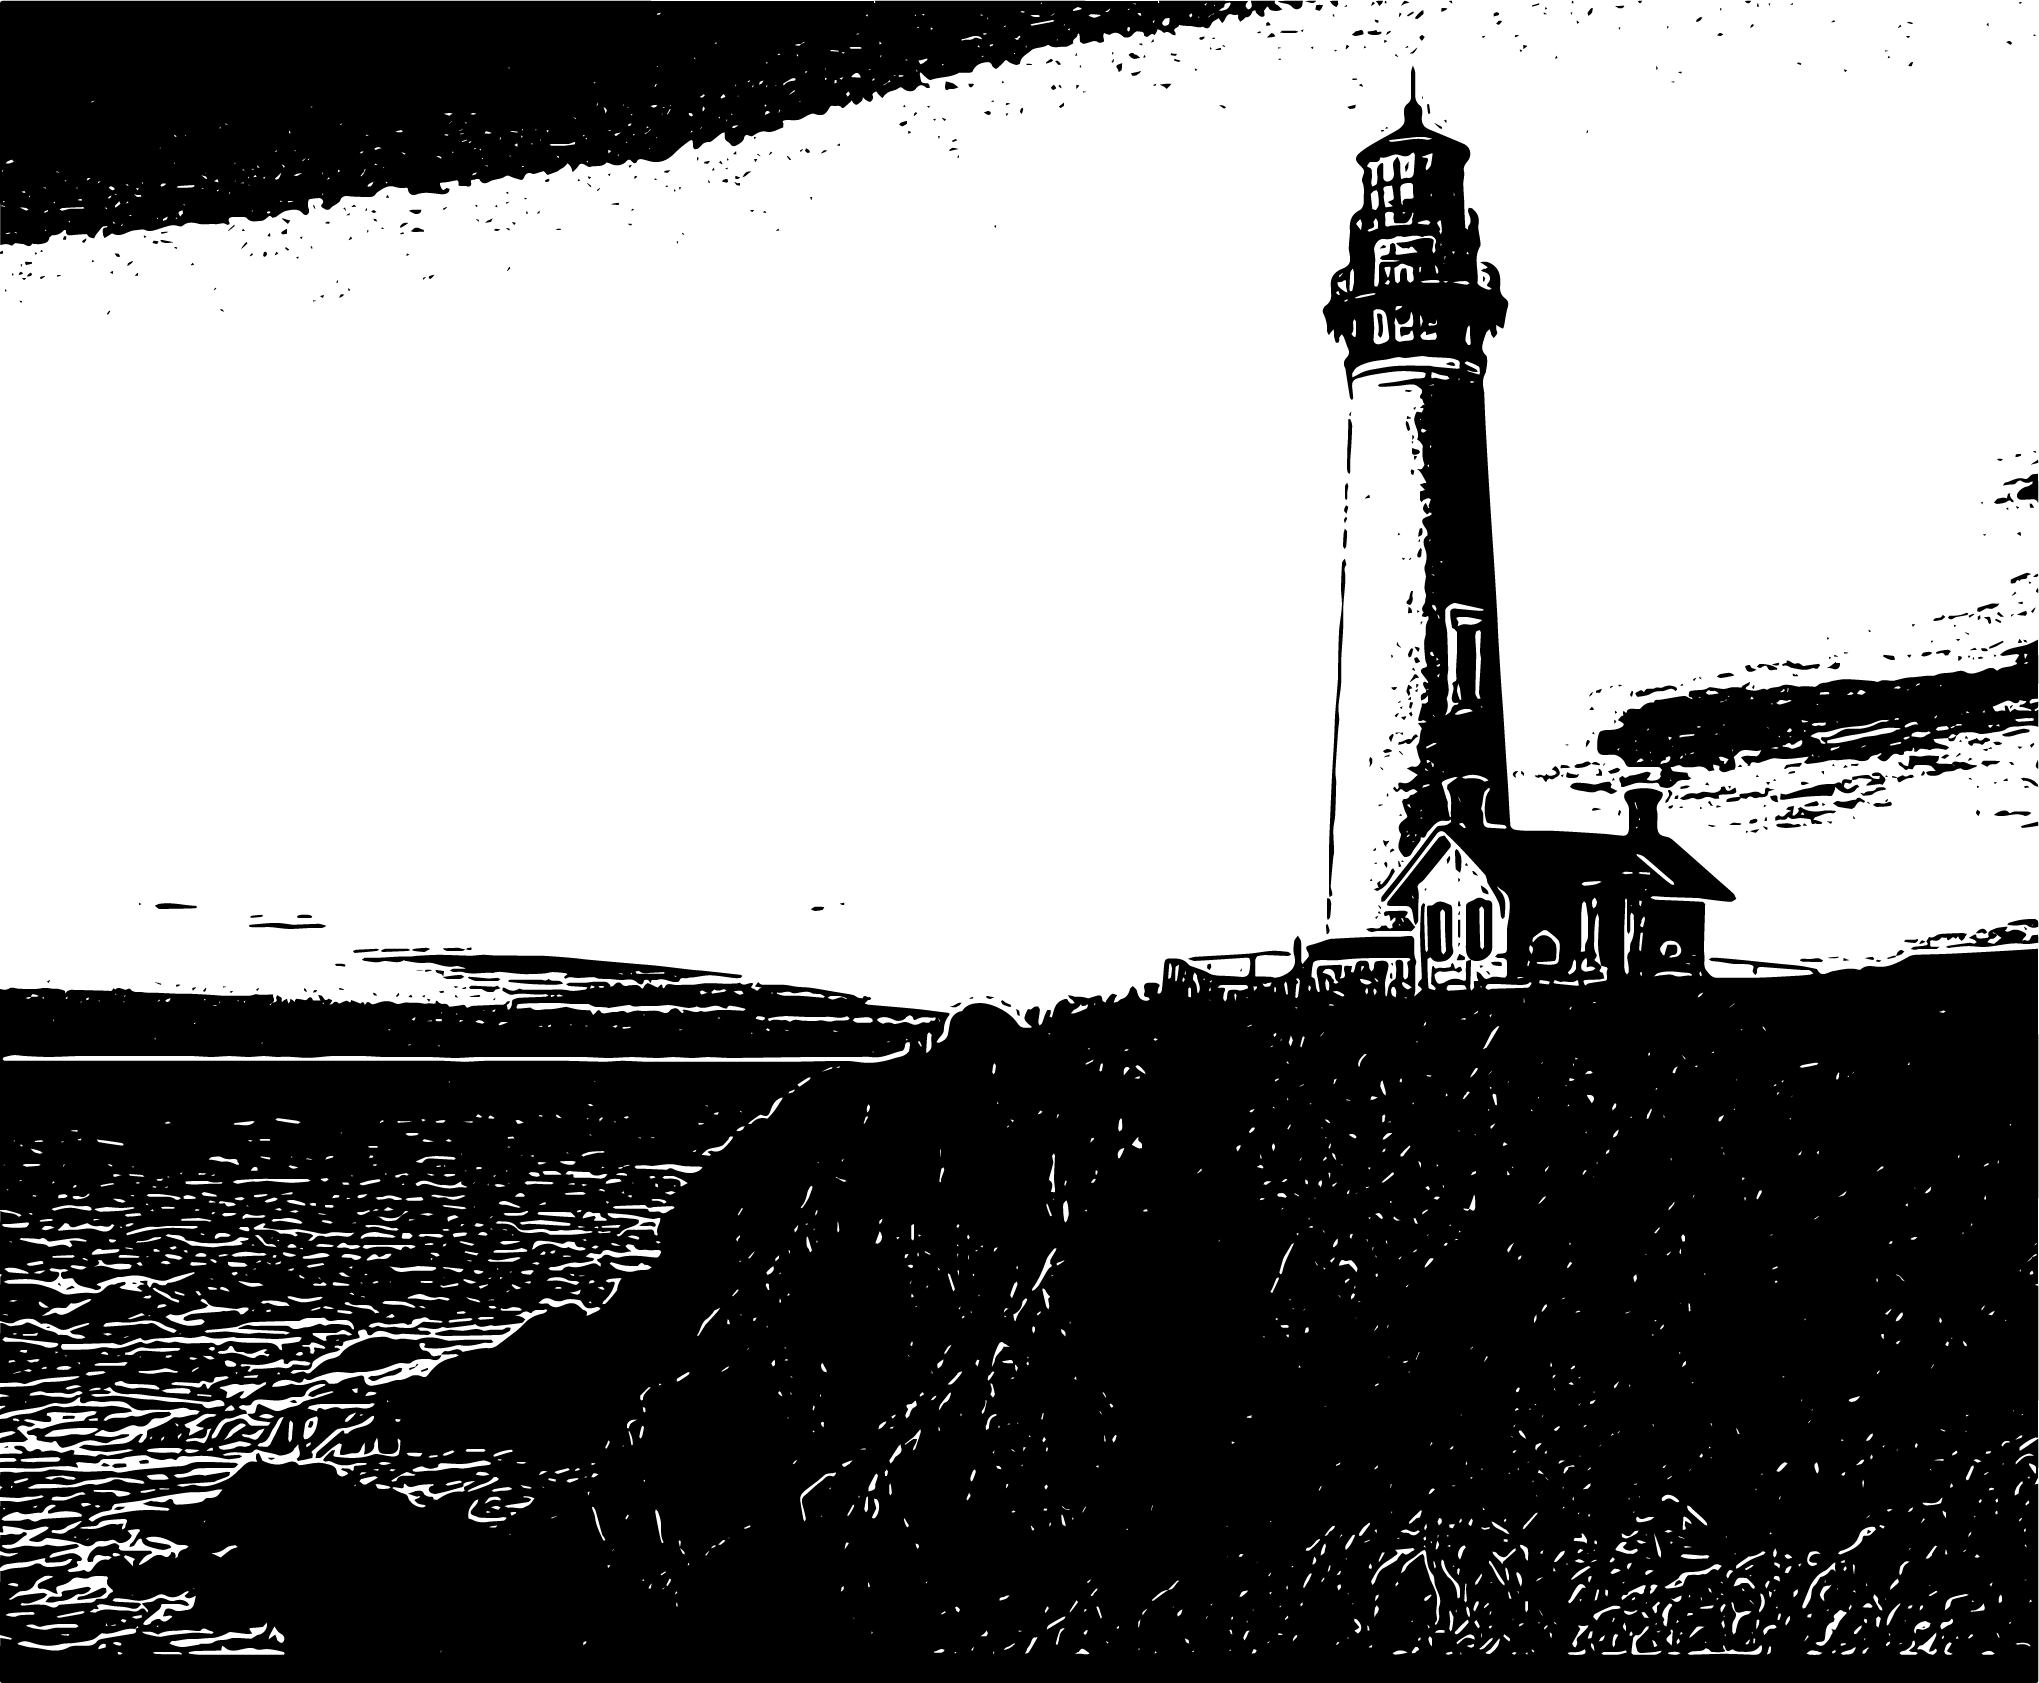 Black and white silhouette image of a lighthouse looking out to sea